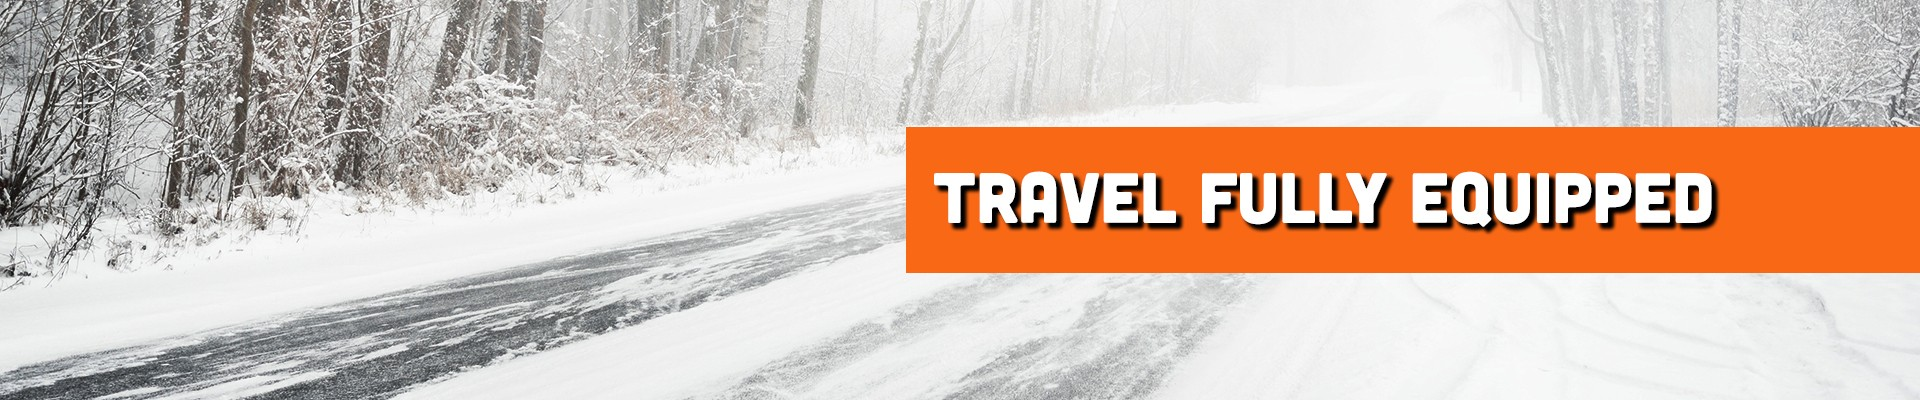 Travel fully equipped when driving your RV in the snow.